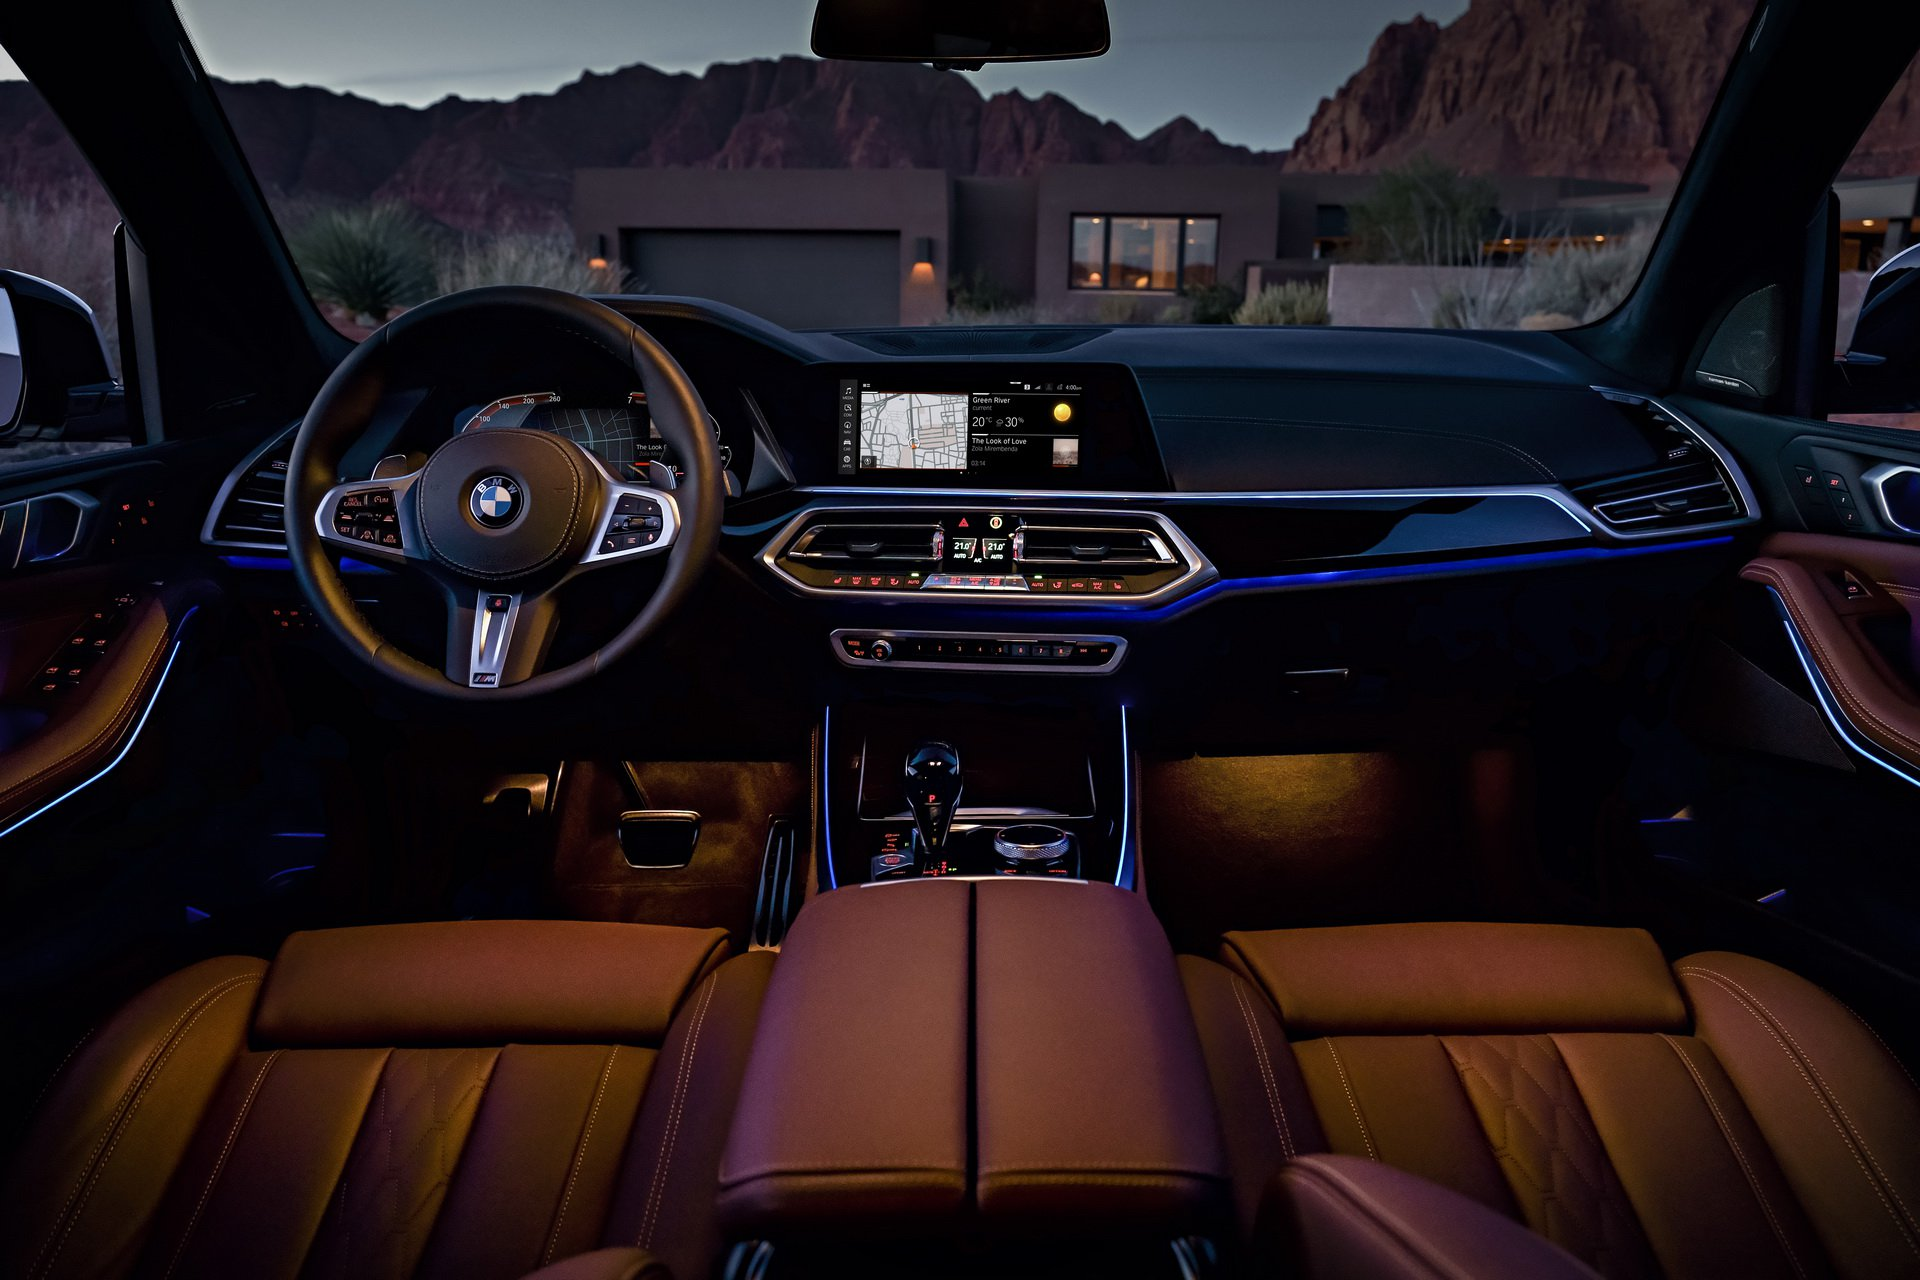 BMW Digital Cockpit (6)